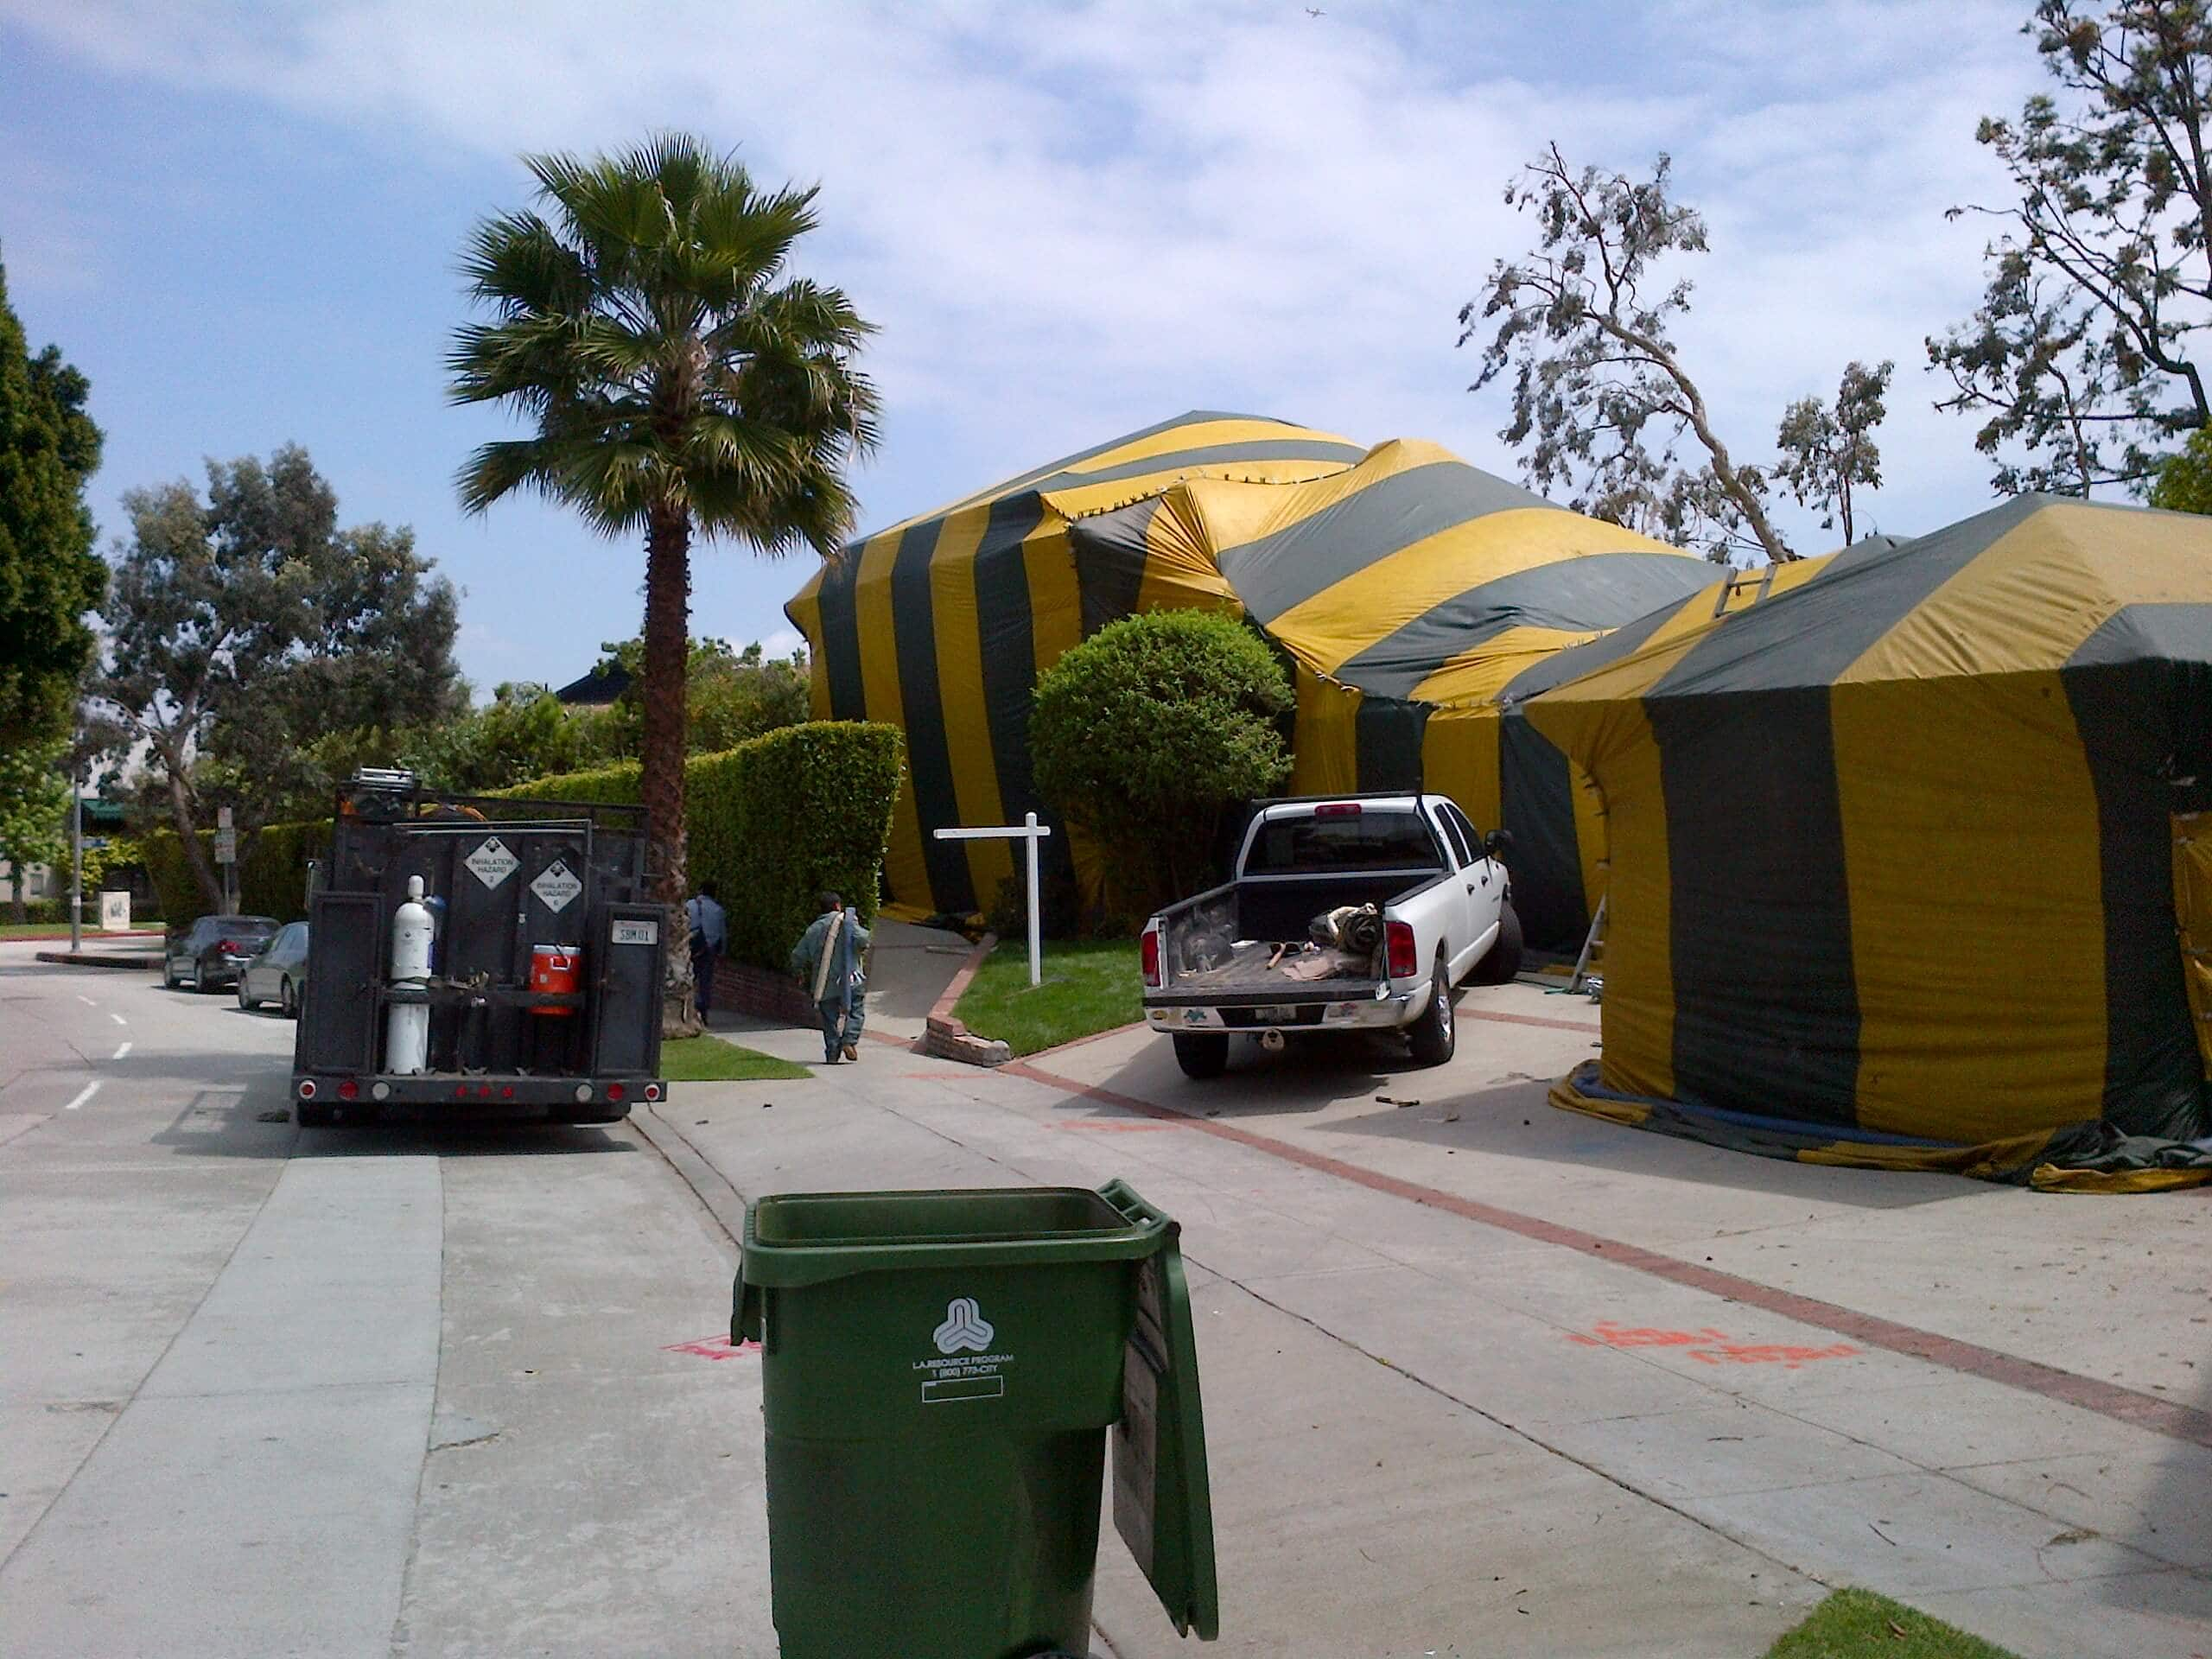 How Long Does House Tenting For Termites Take Best Tent 2017 & How Long Does House Tenting For Termites Take - Best Tent 2018